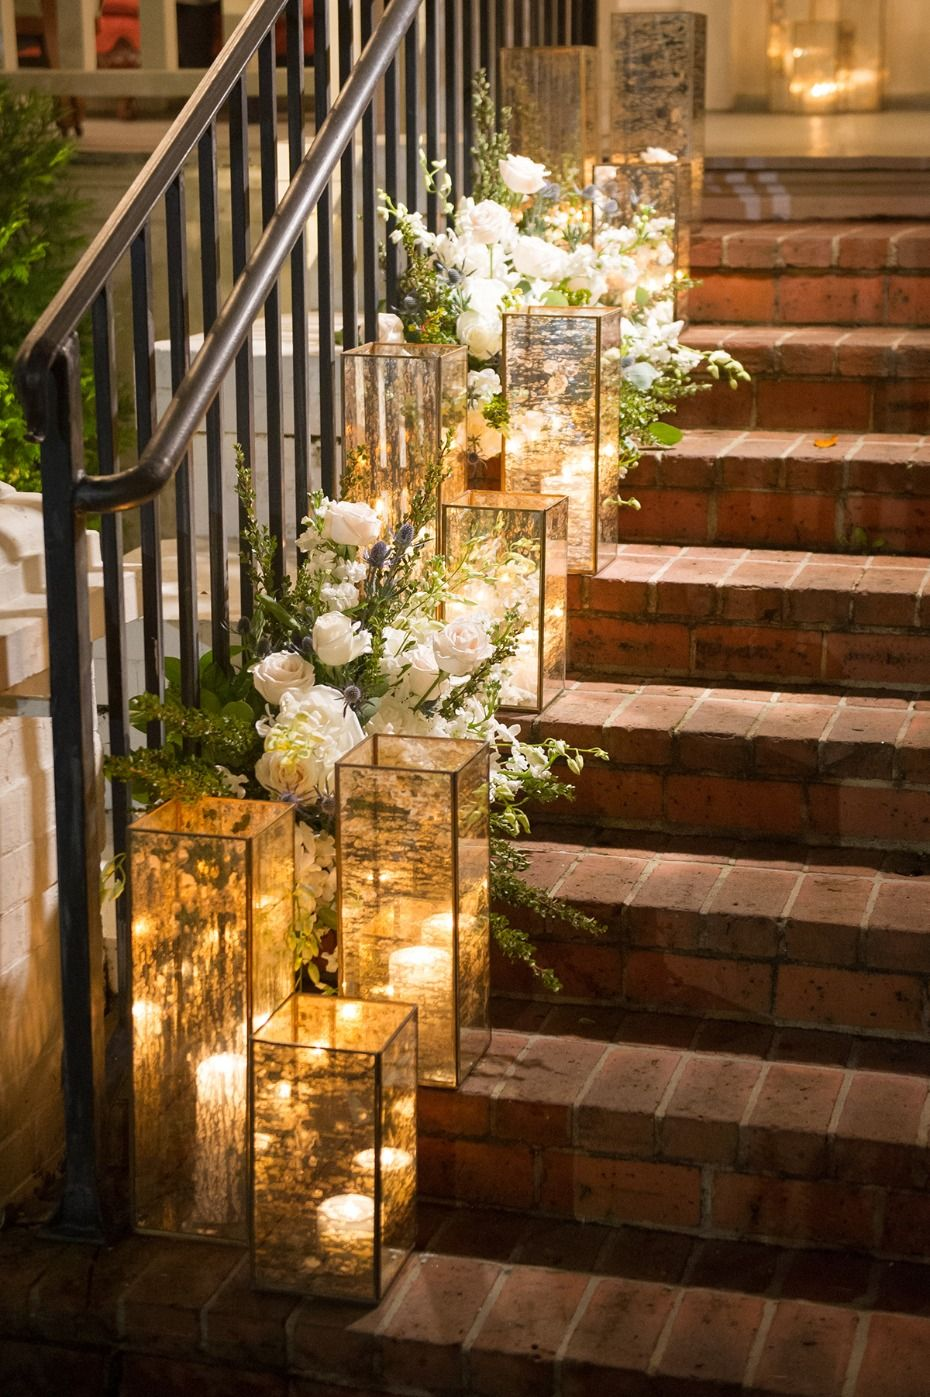 Too Of Stairs Decor